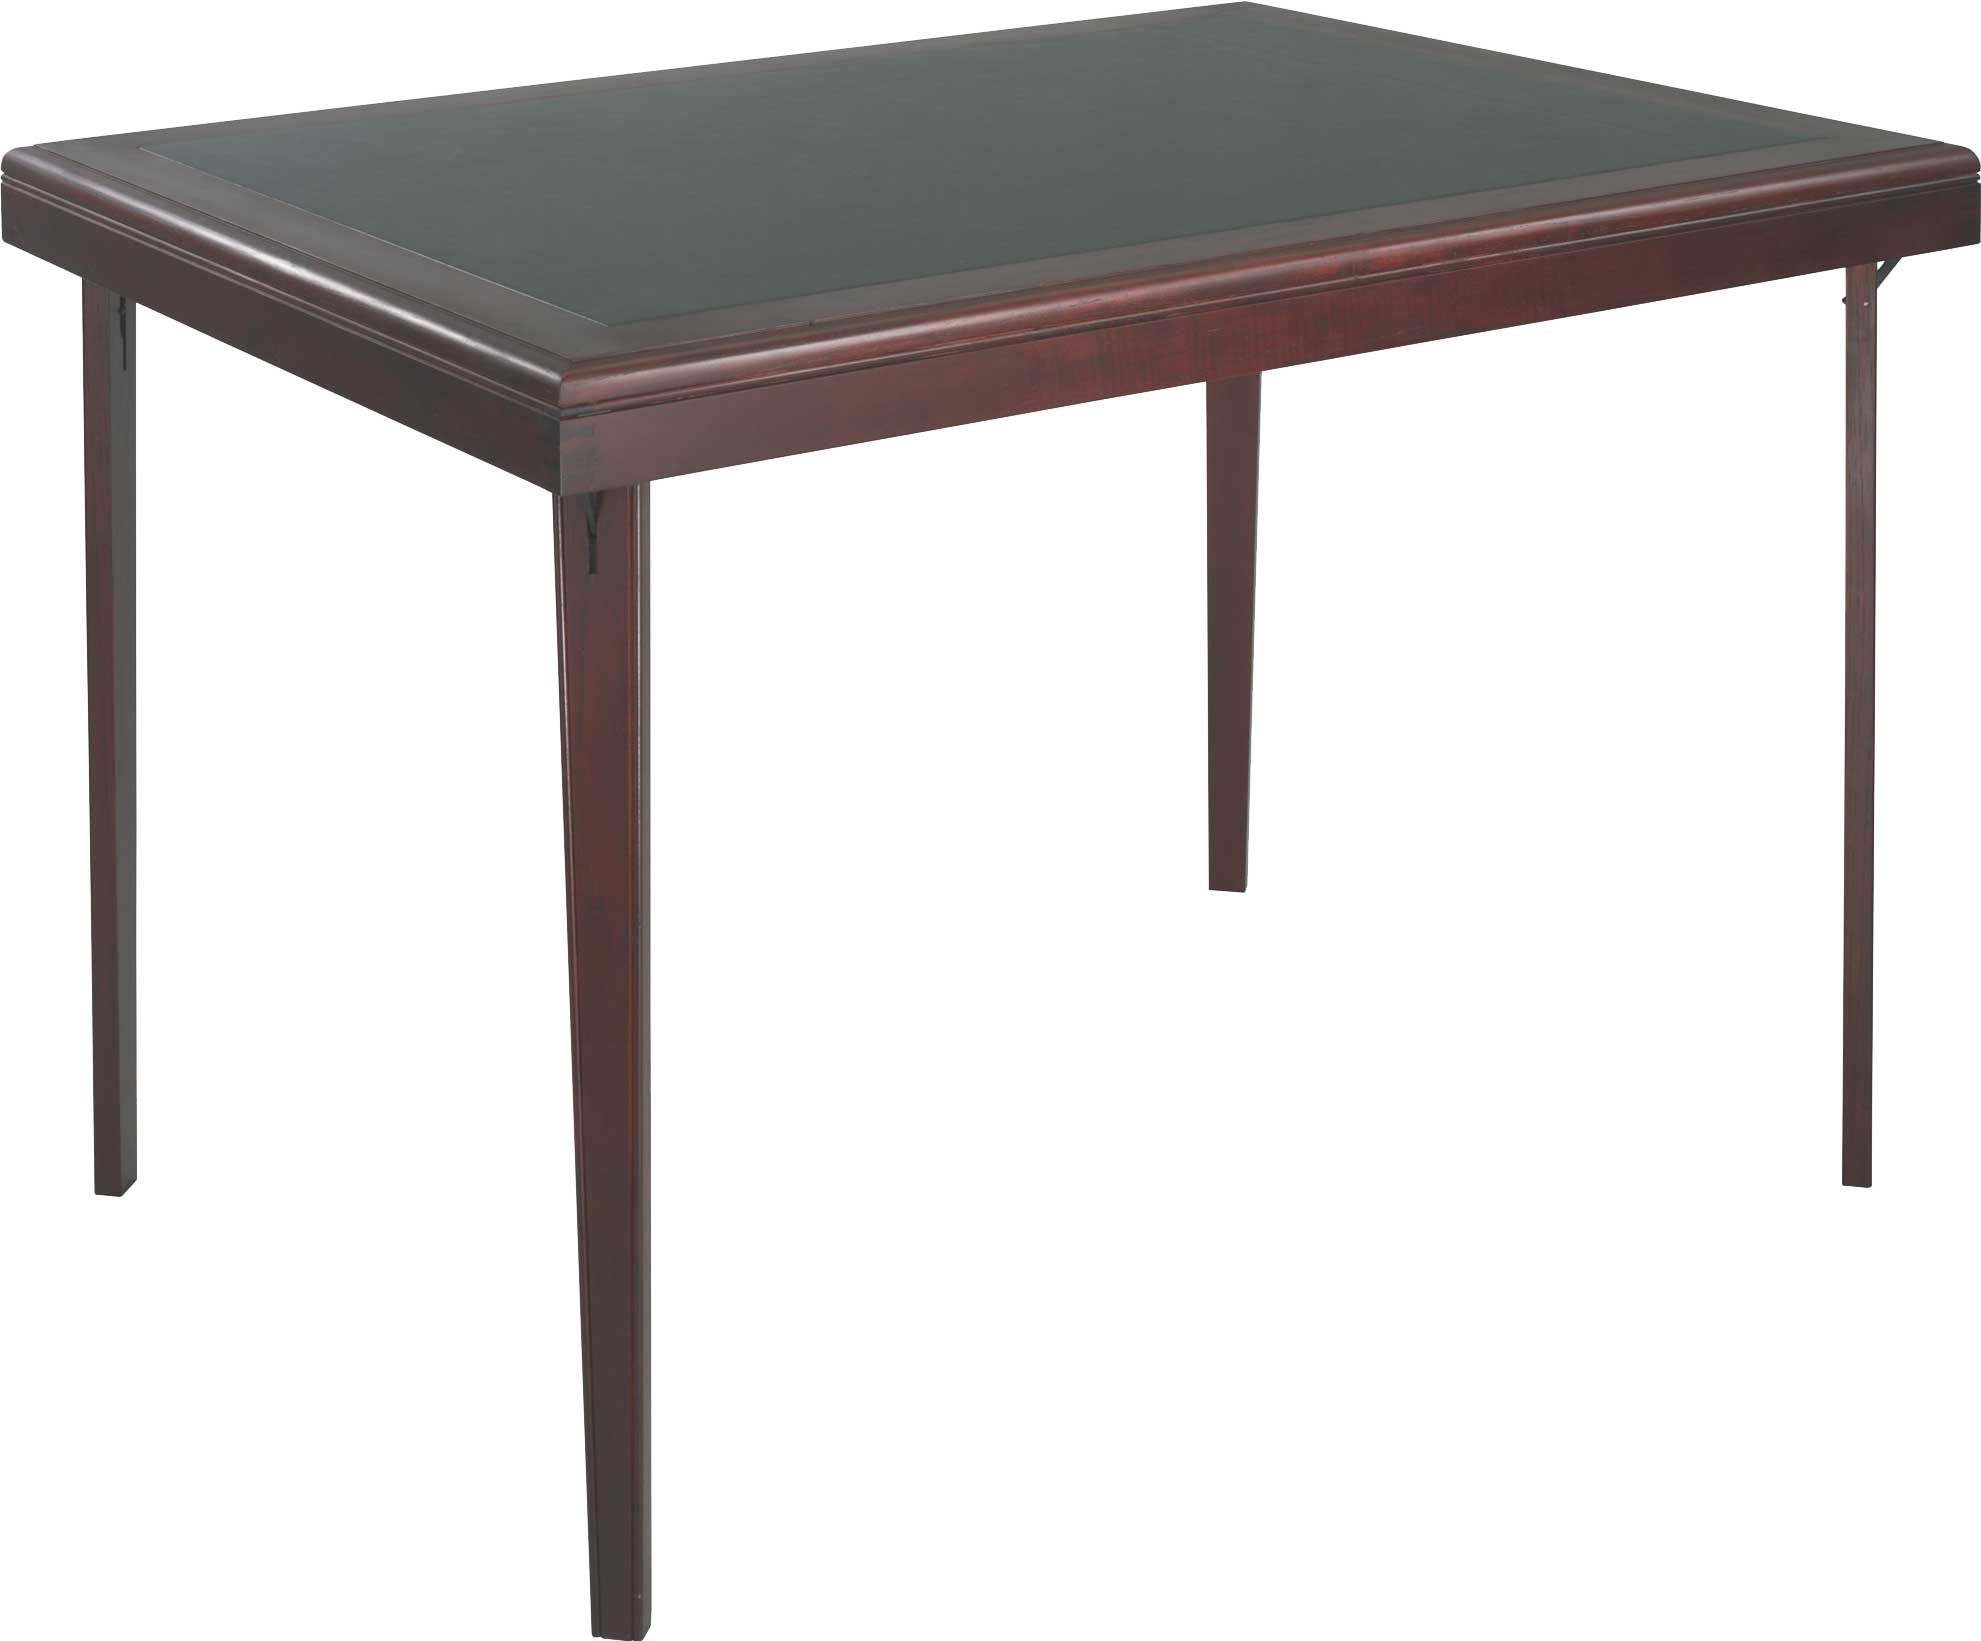 strong folding wood tables in rectangular shape